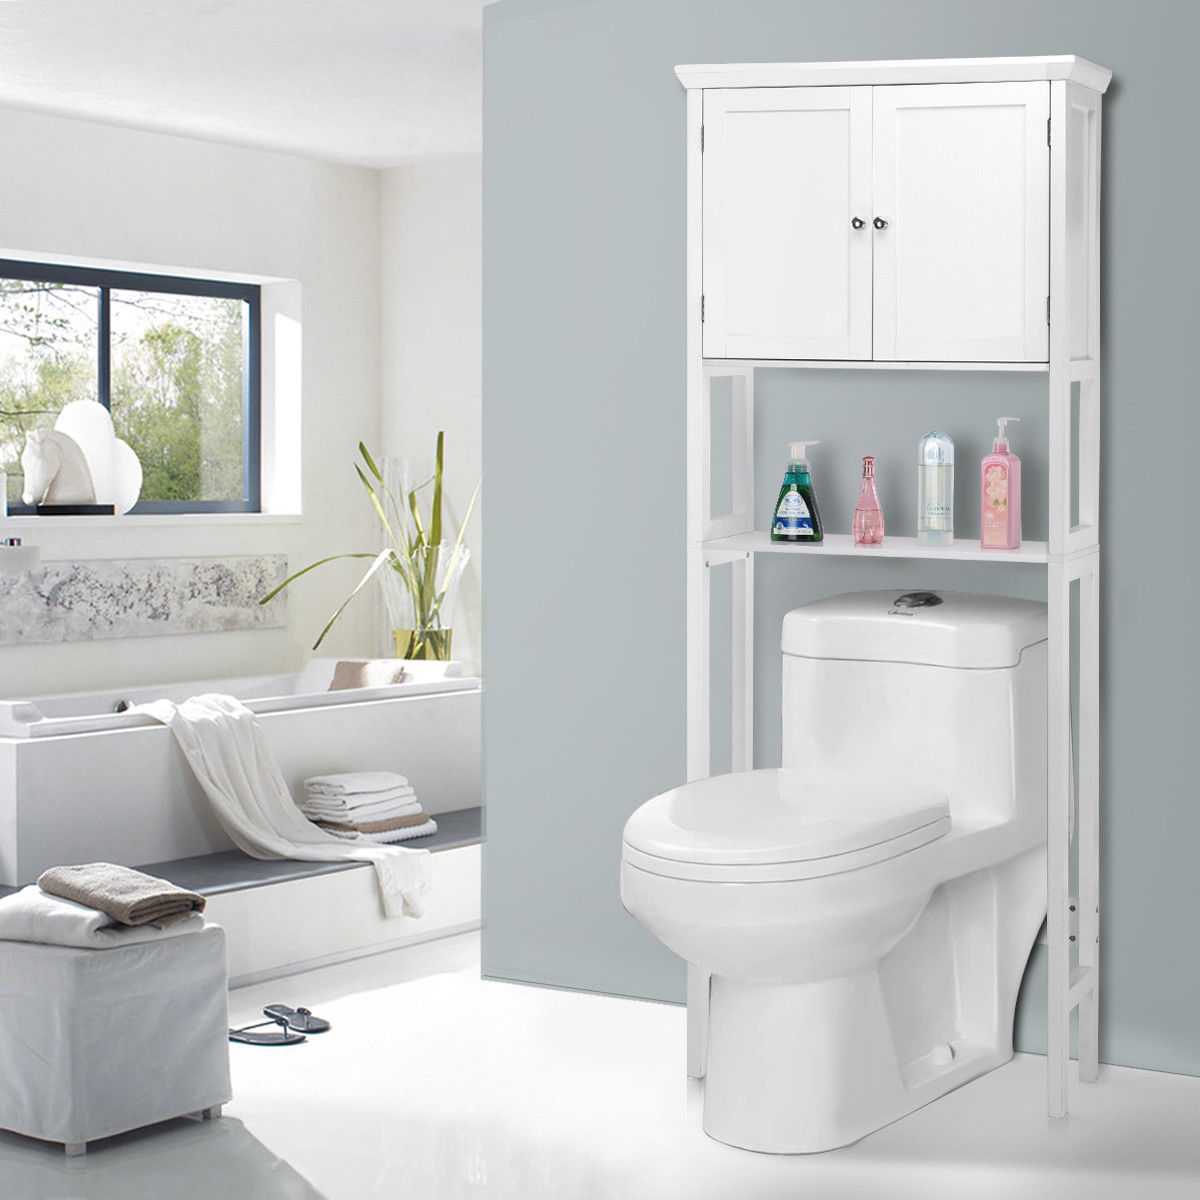 Toilet Storage Space Saver Towel Rack Shelf Cabinet Bathroom